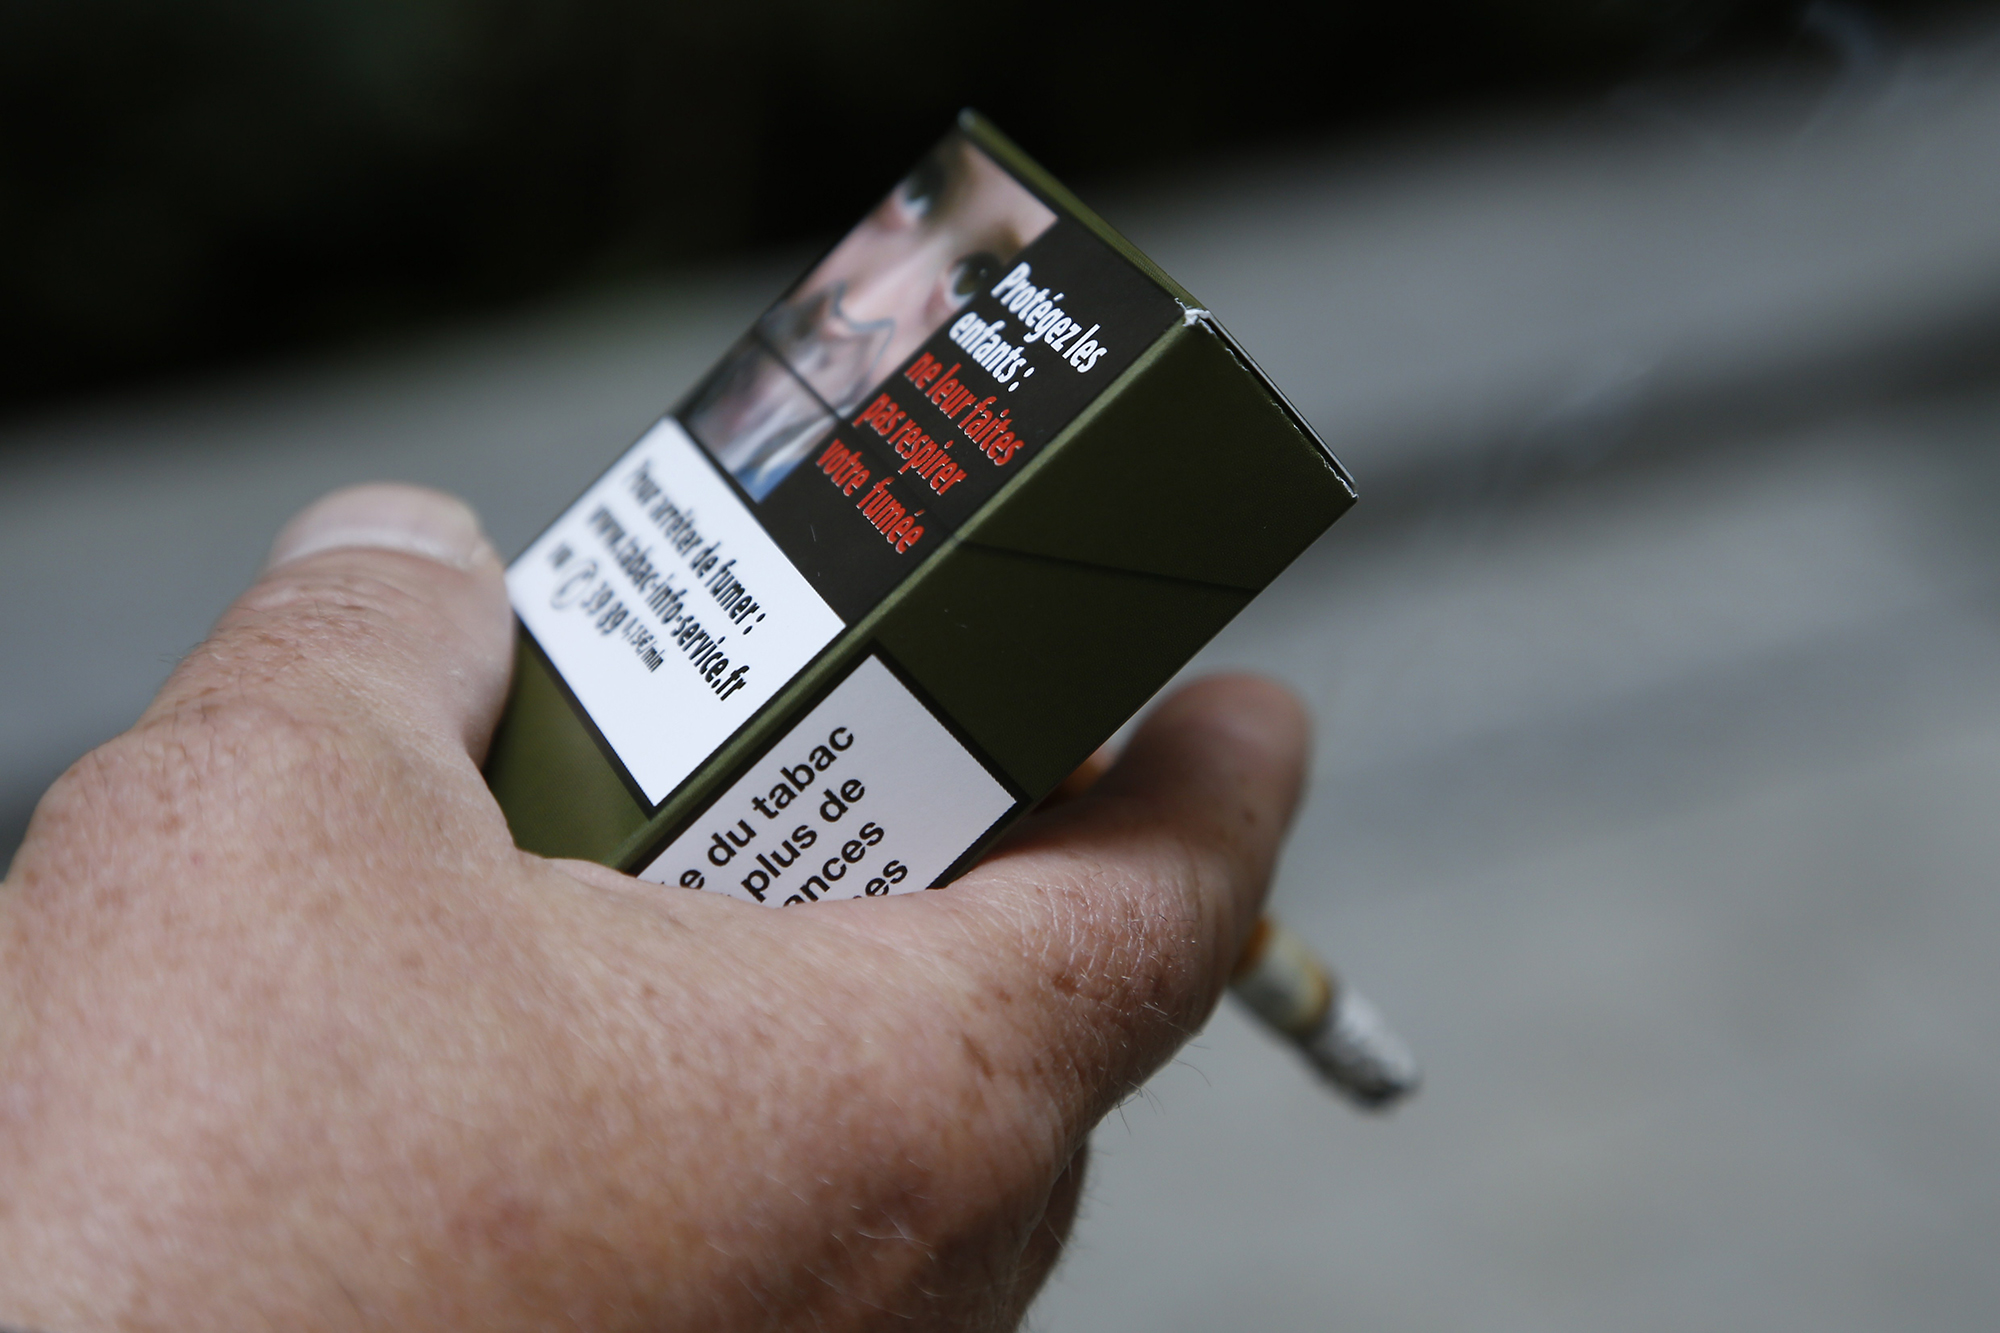 A man smokes a cigarette on September 25, 2014 in Paris, holding a sample of a  plain cigarette packaging  cigarette box (THOMAS SAMSON/AFP/Getty Images)